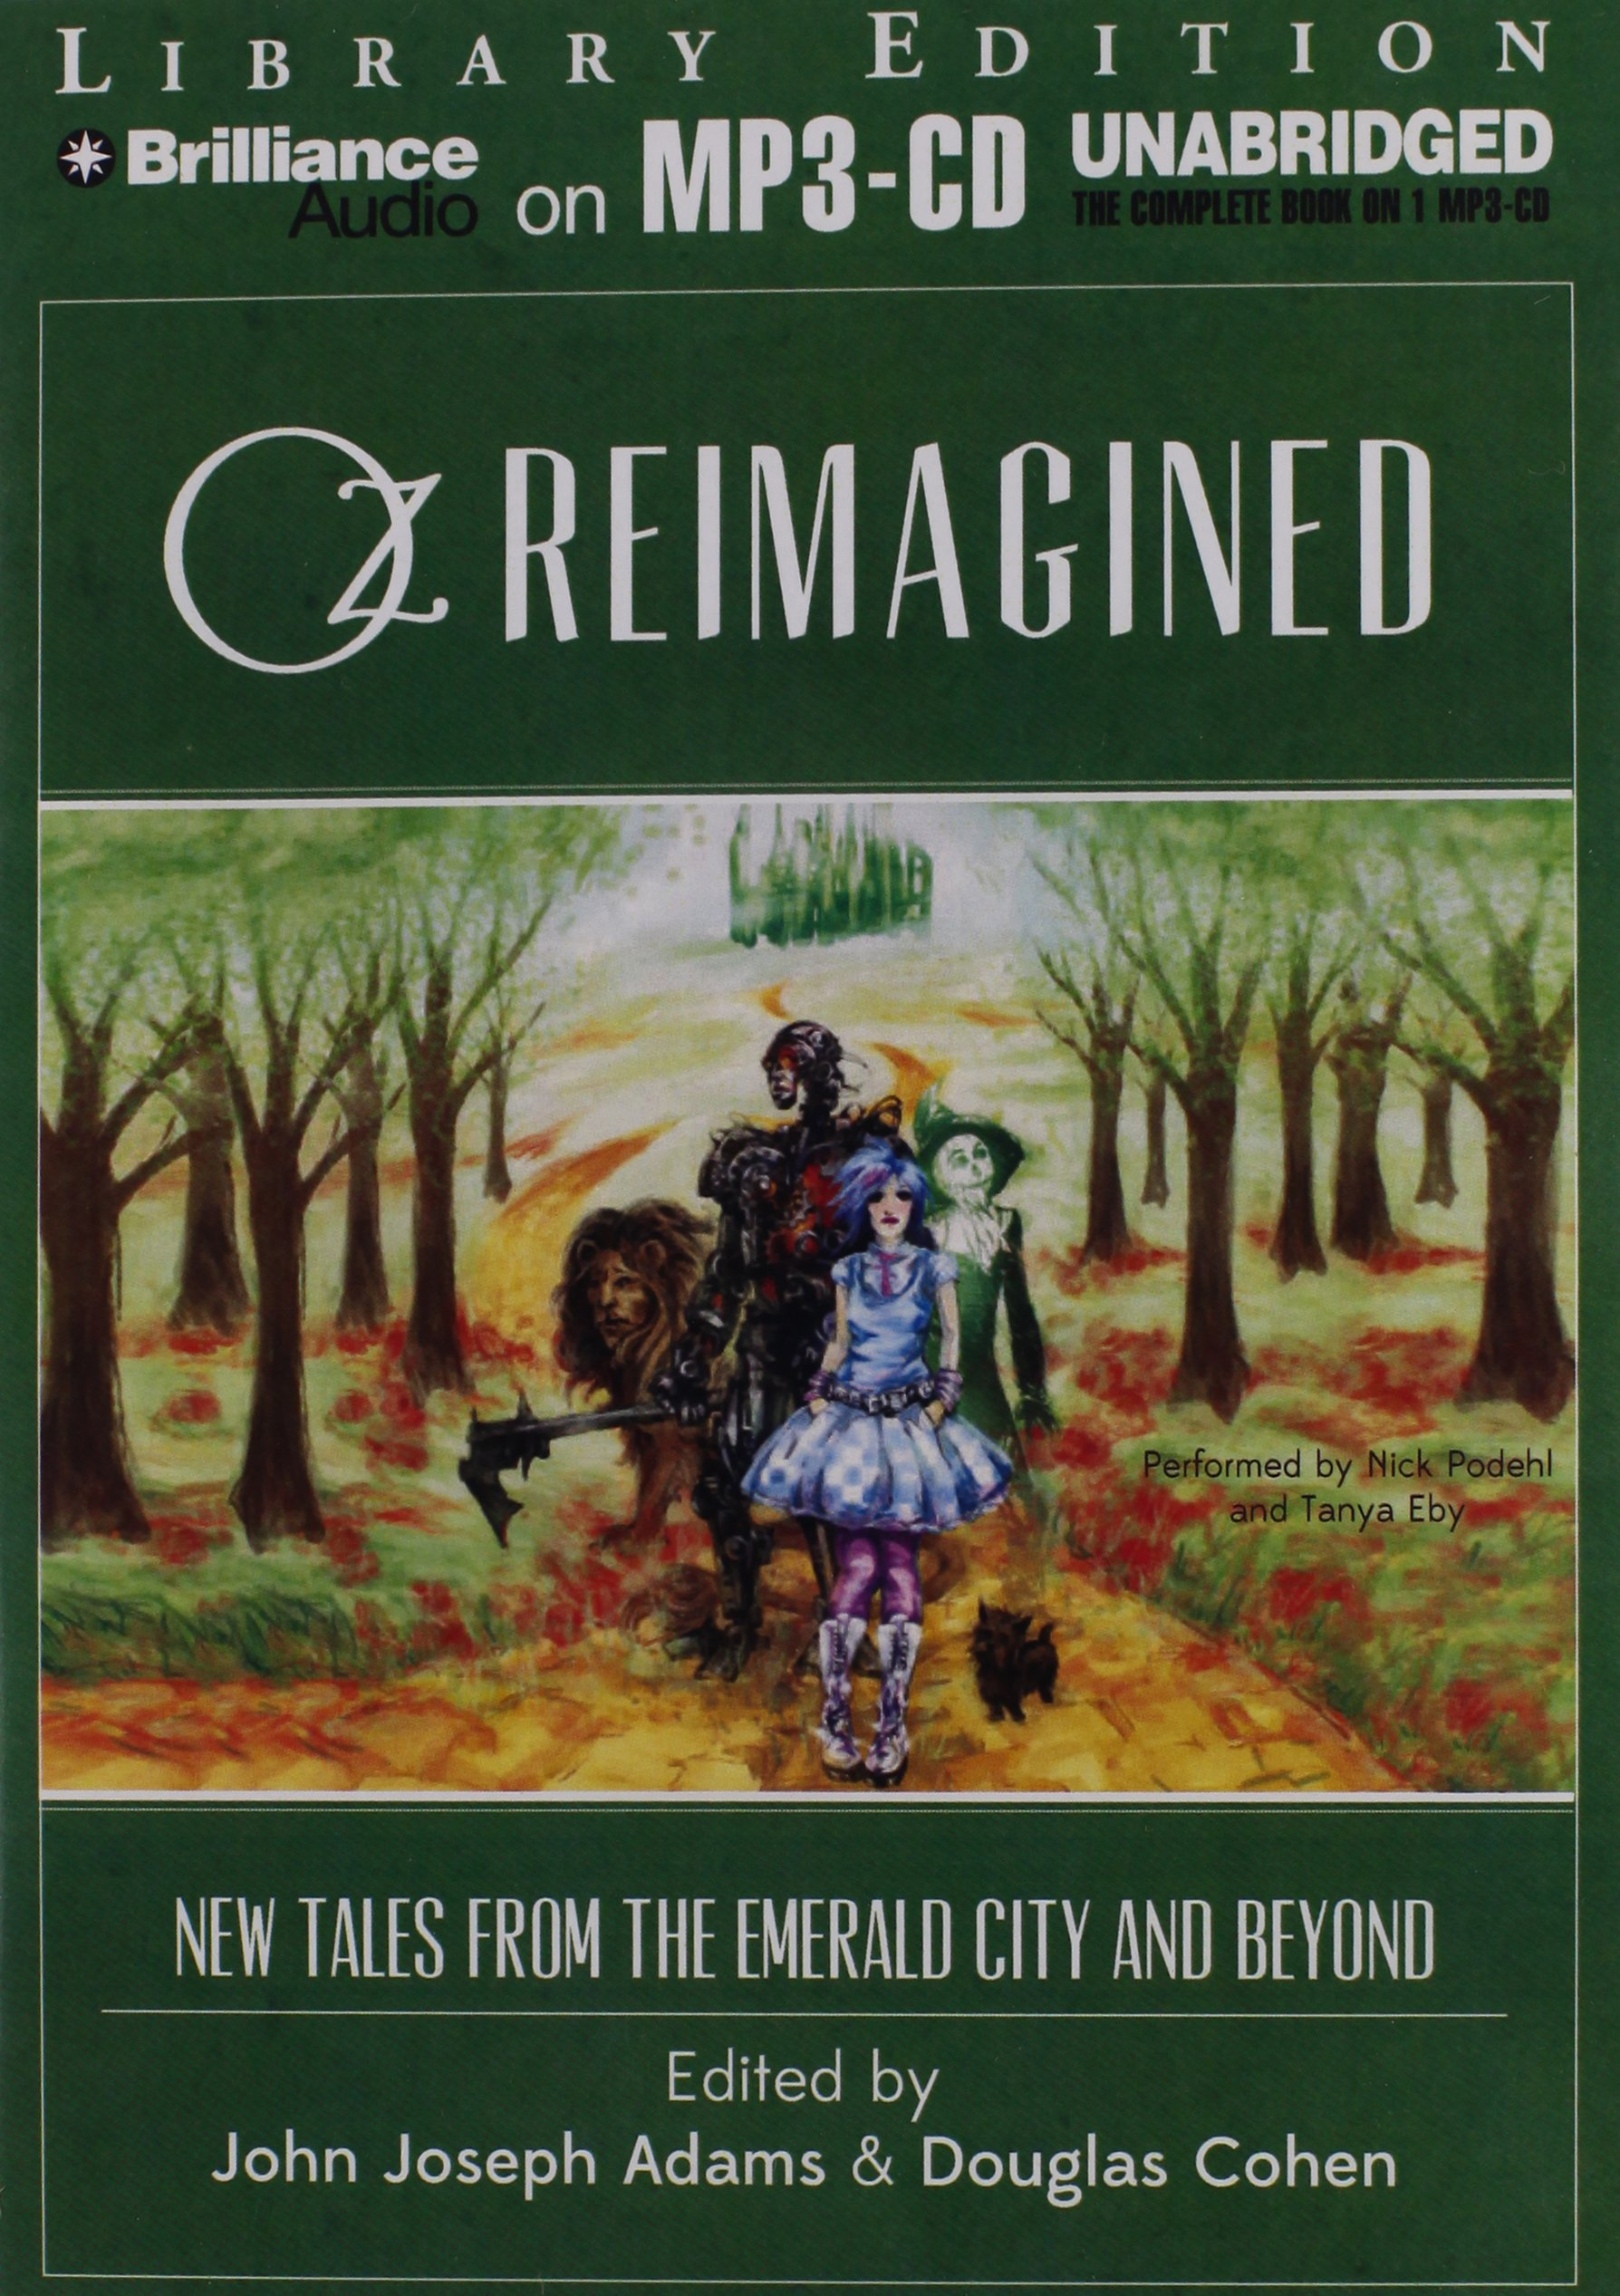 Oz Reimagined: Beyond the Naked Eye